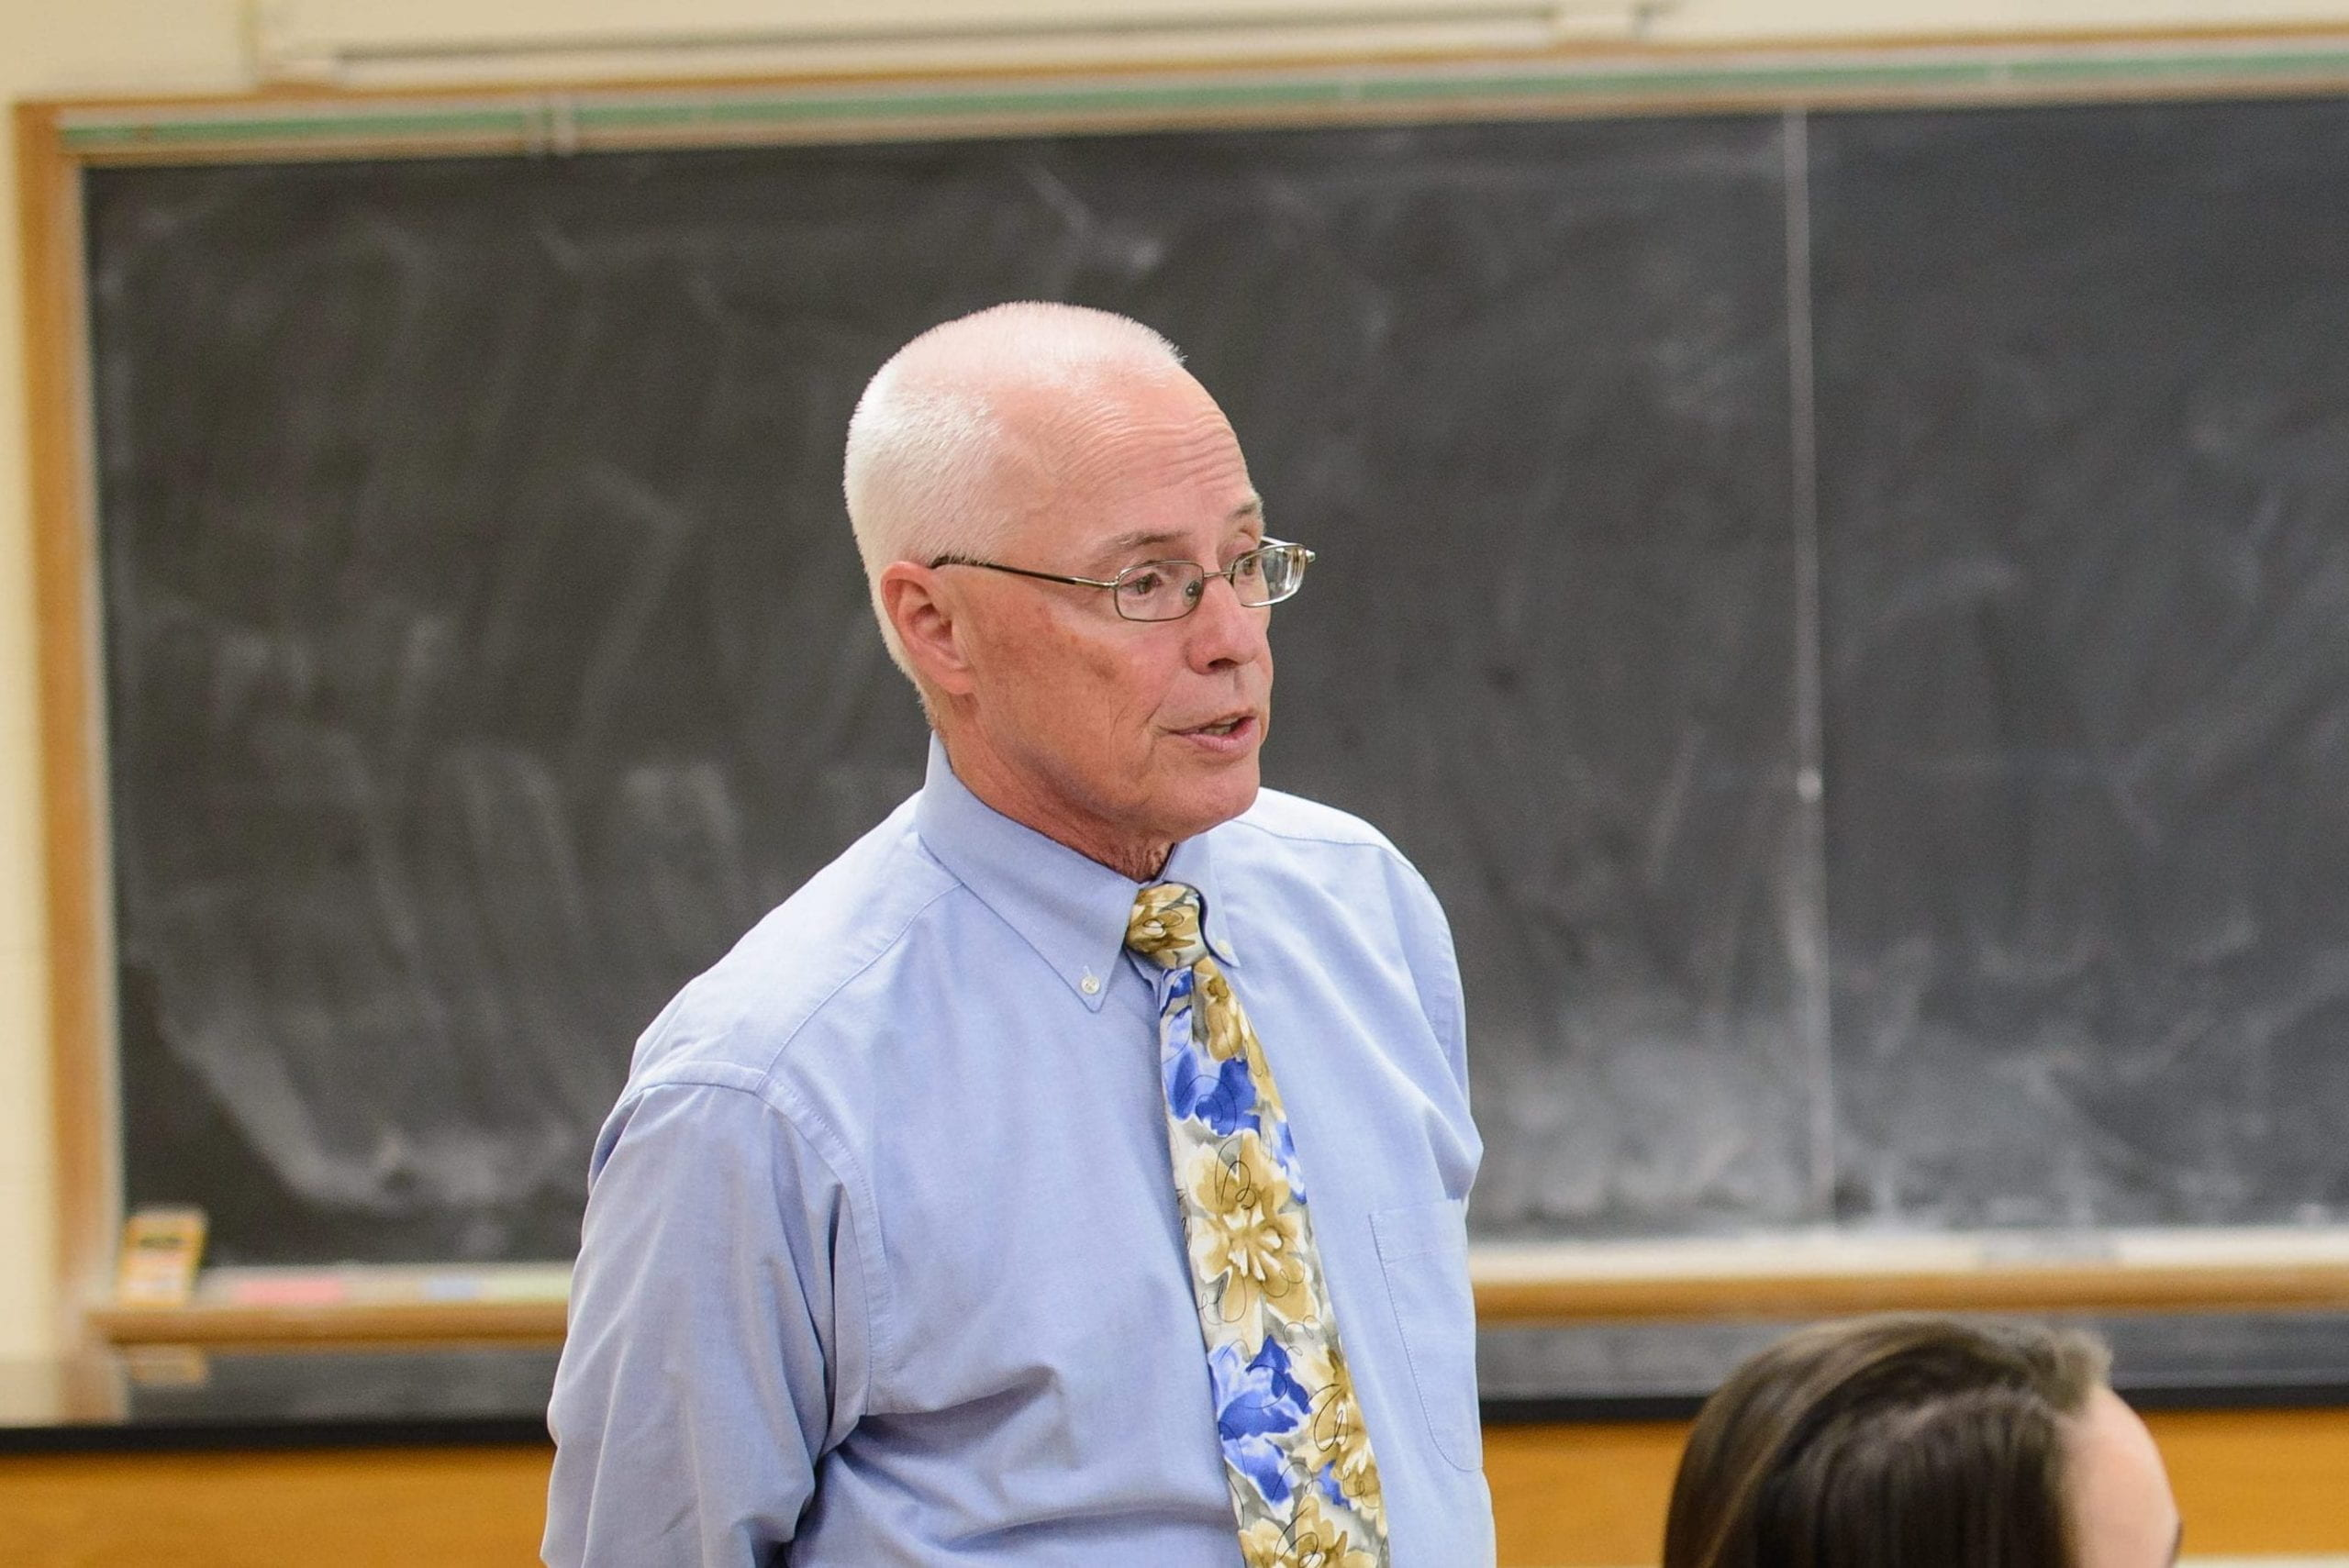 Image of Carl Caster, Science professor, teaching.  He is seen from waist up, wearing glasses, sporting a white hair crew cut, a light blue button up shirt, with a brightly colored blue and gold flower tie.  Blackboard in background.